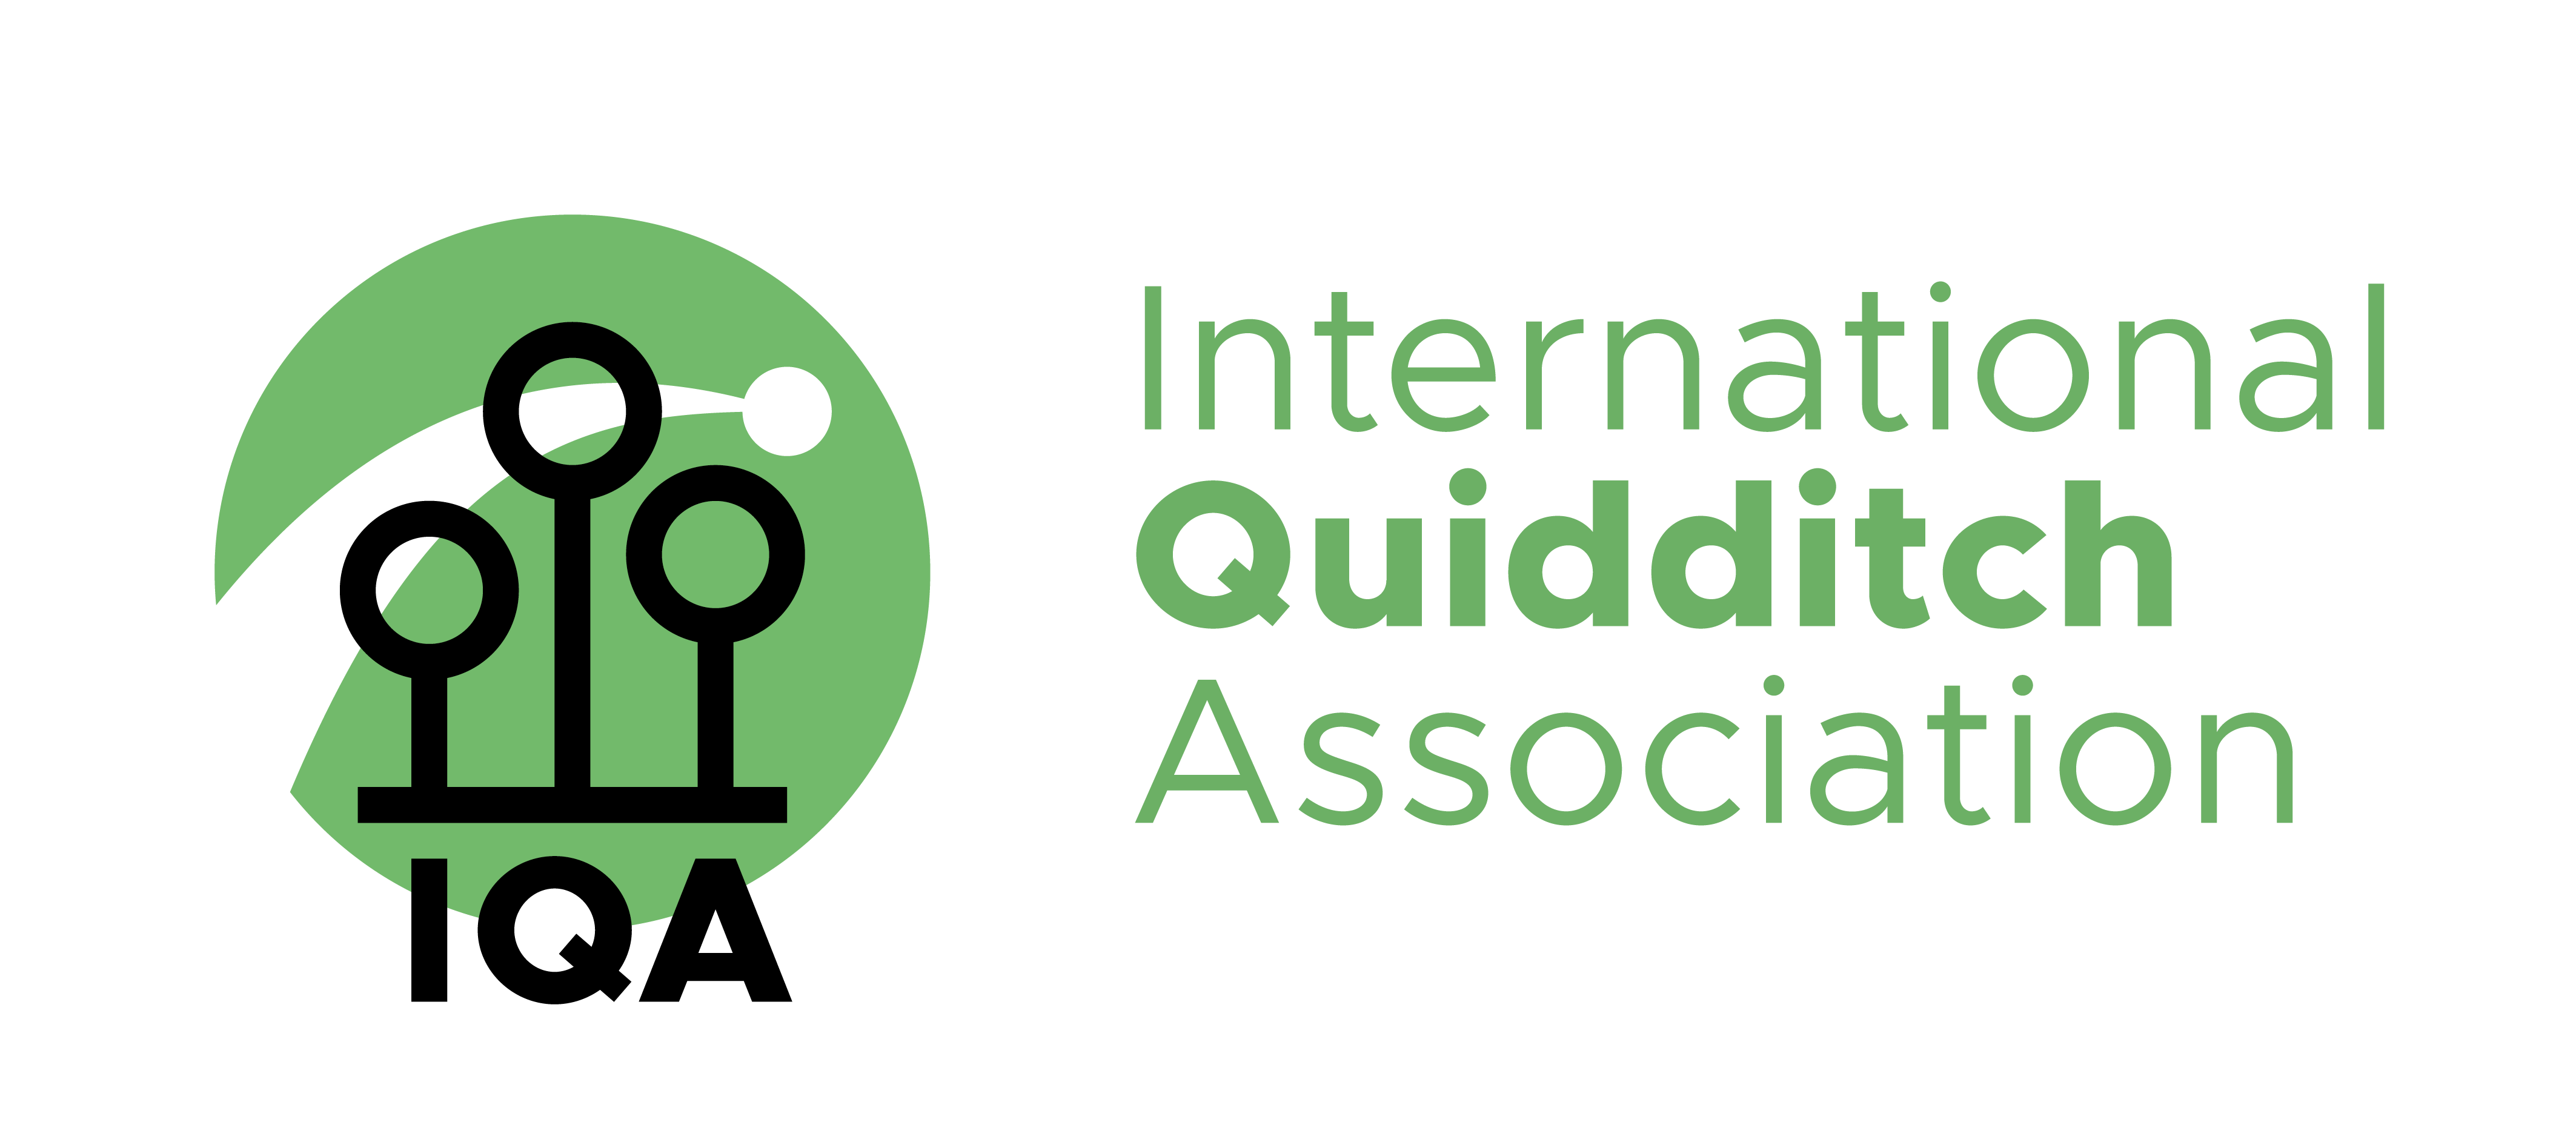 International Quidditch Association